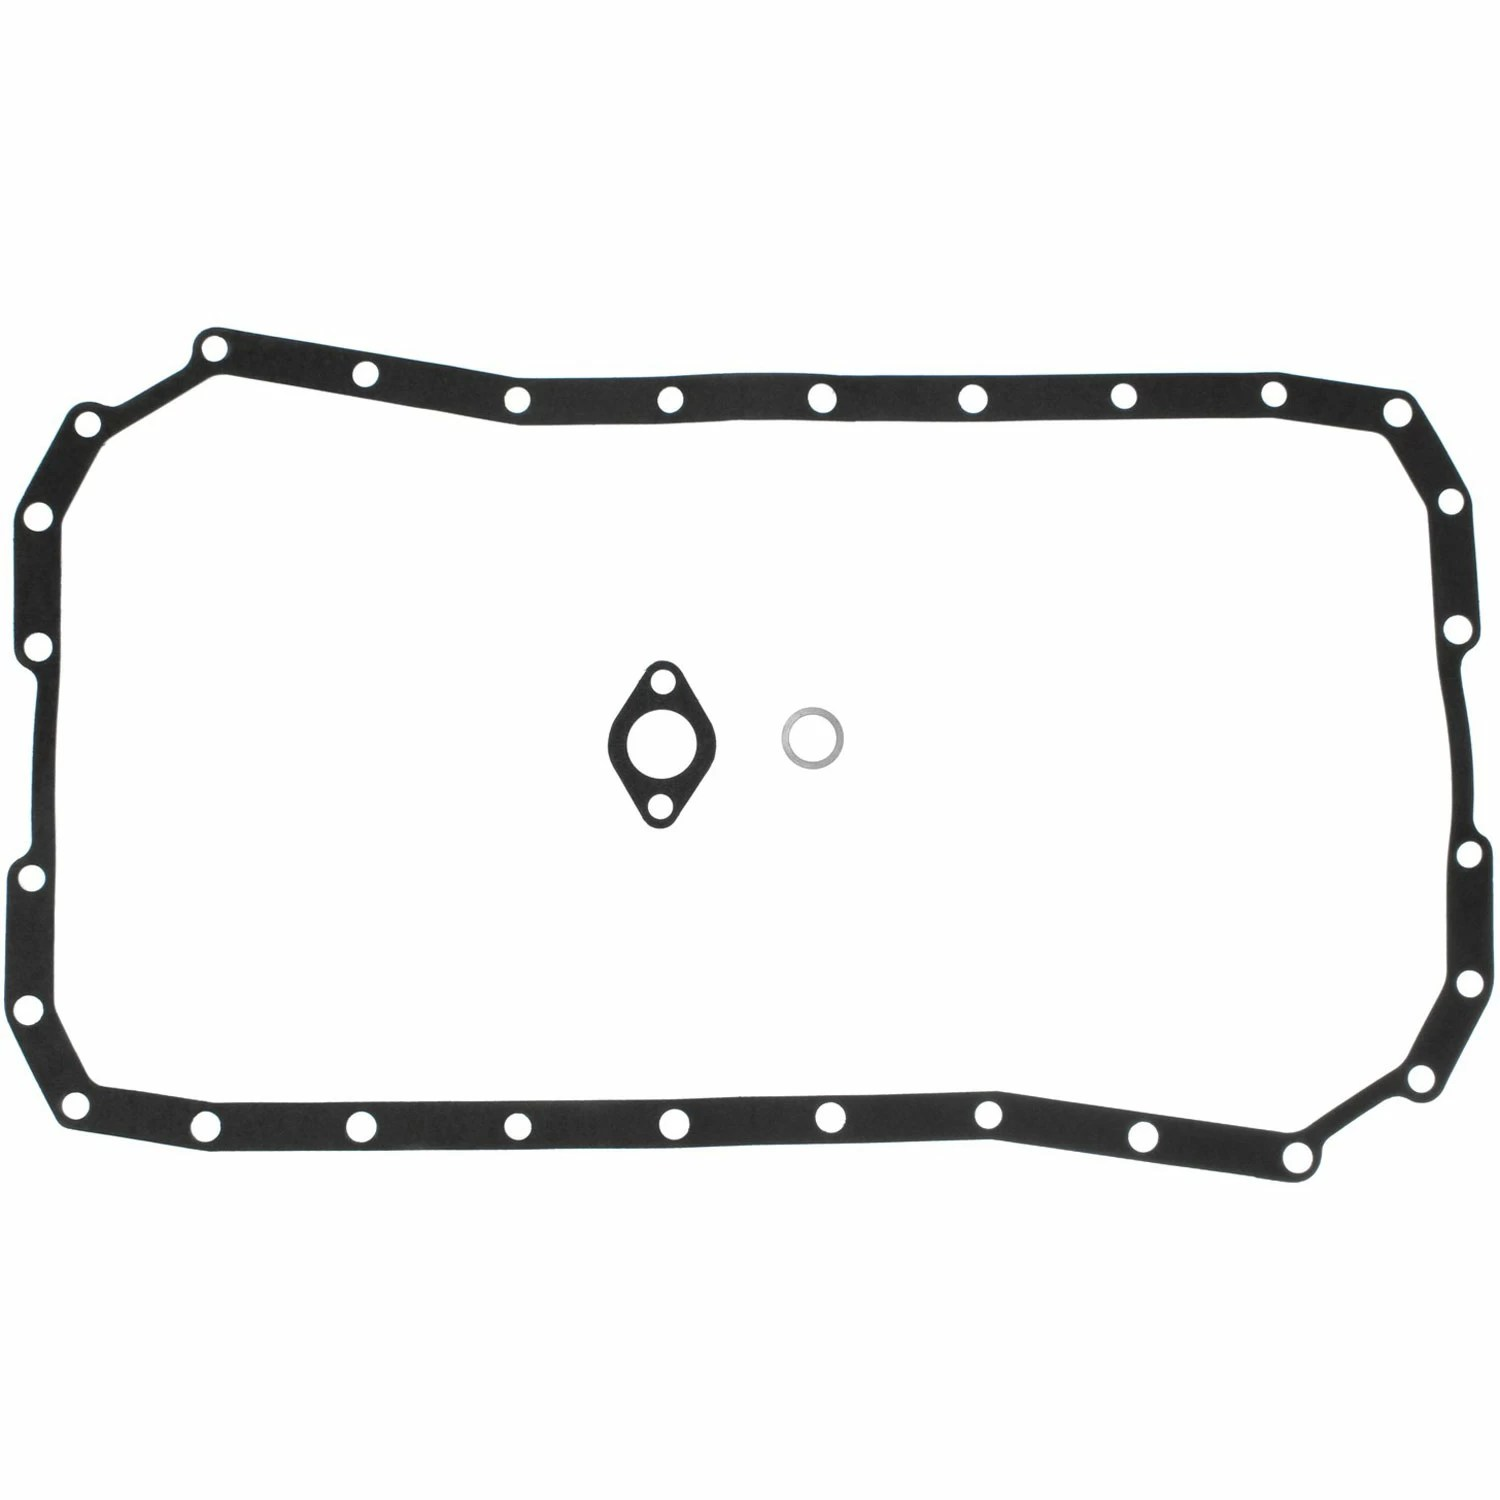 Mahle Engine Oil Pan Gasket For 3 9l Cummins 4bt